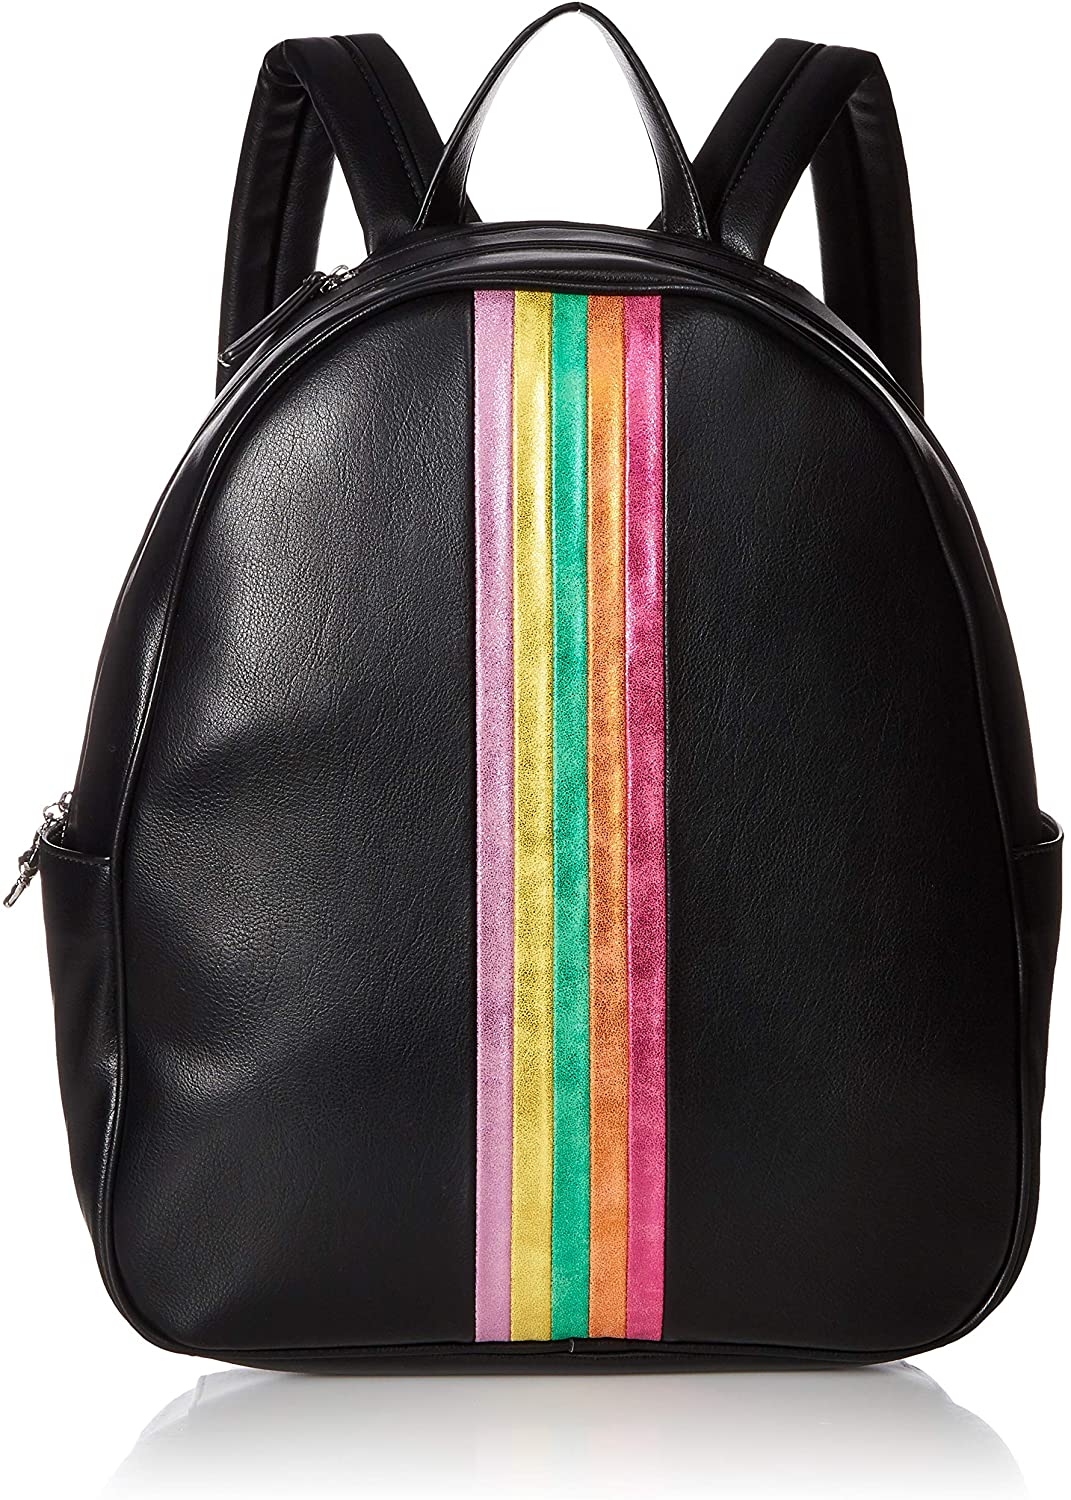 Betsey Johnson Between the Lines Backpack